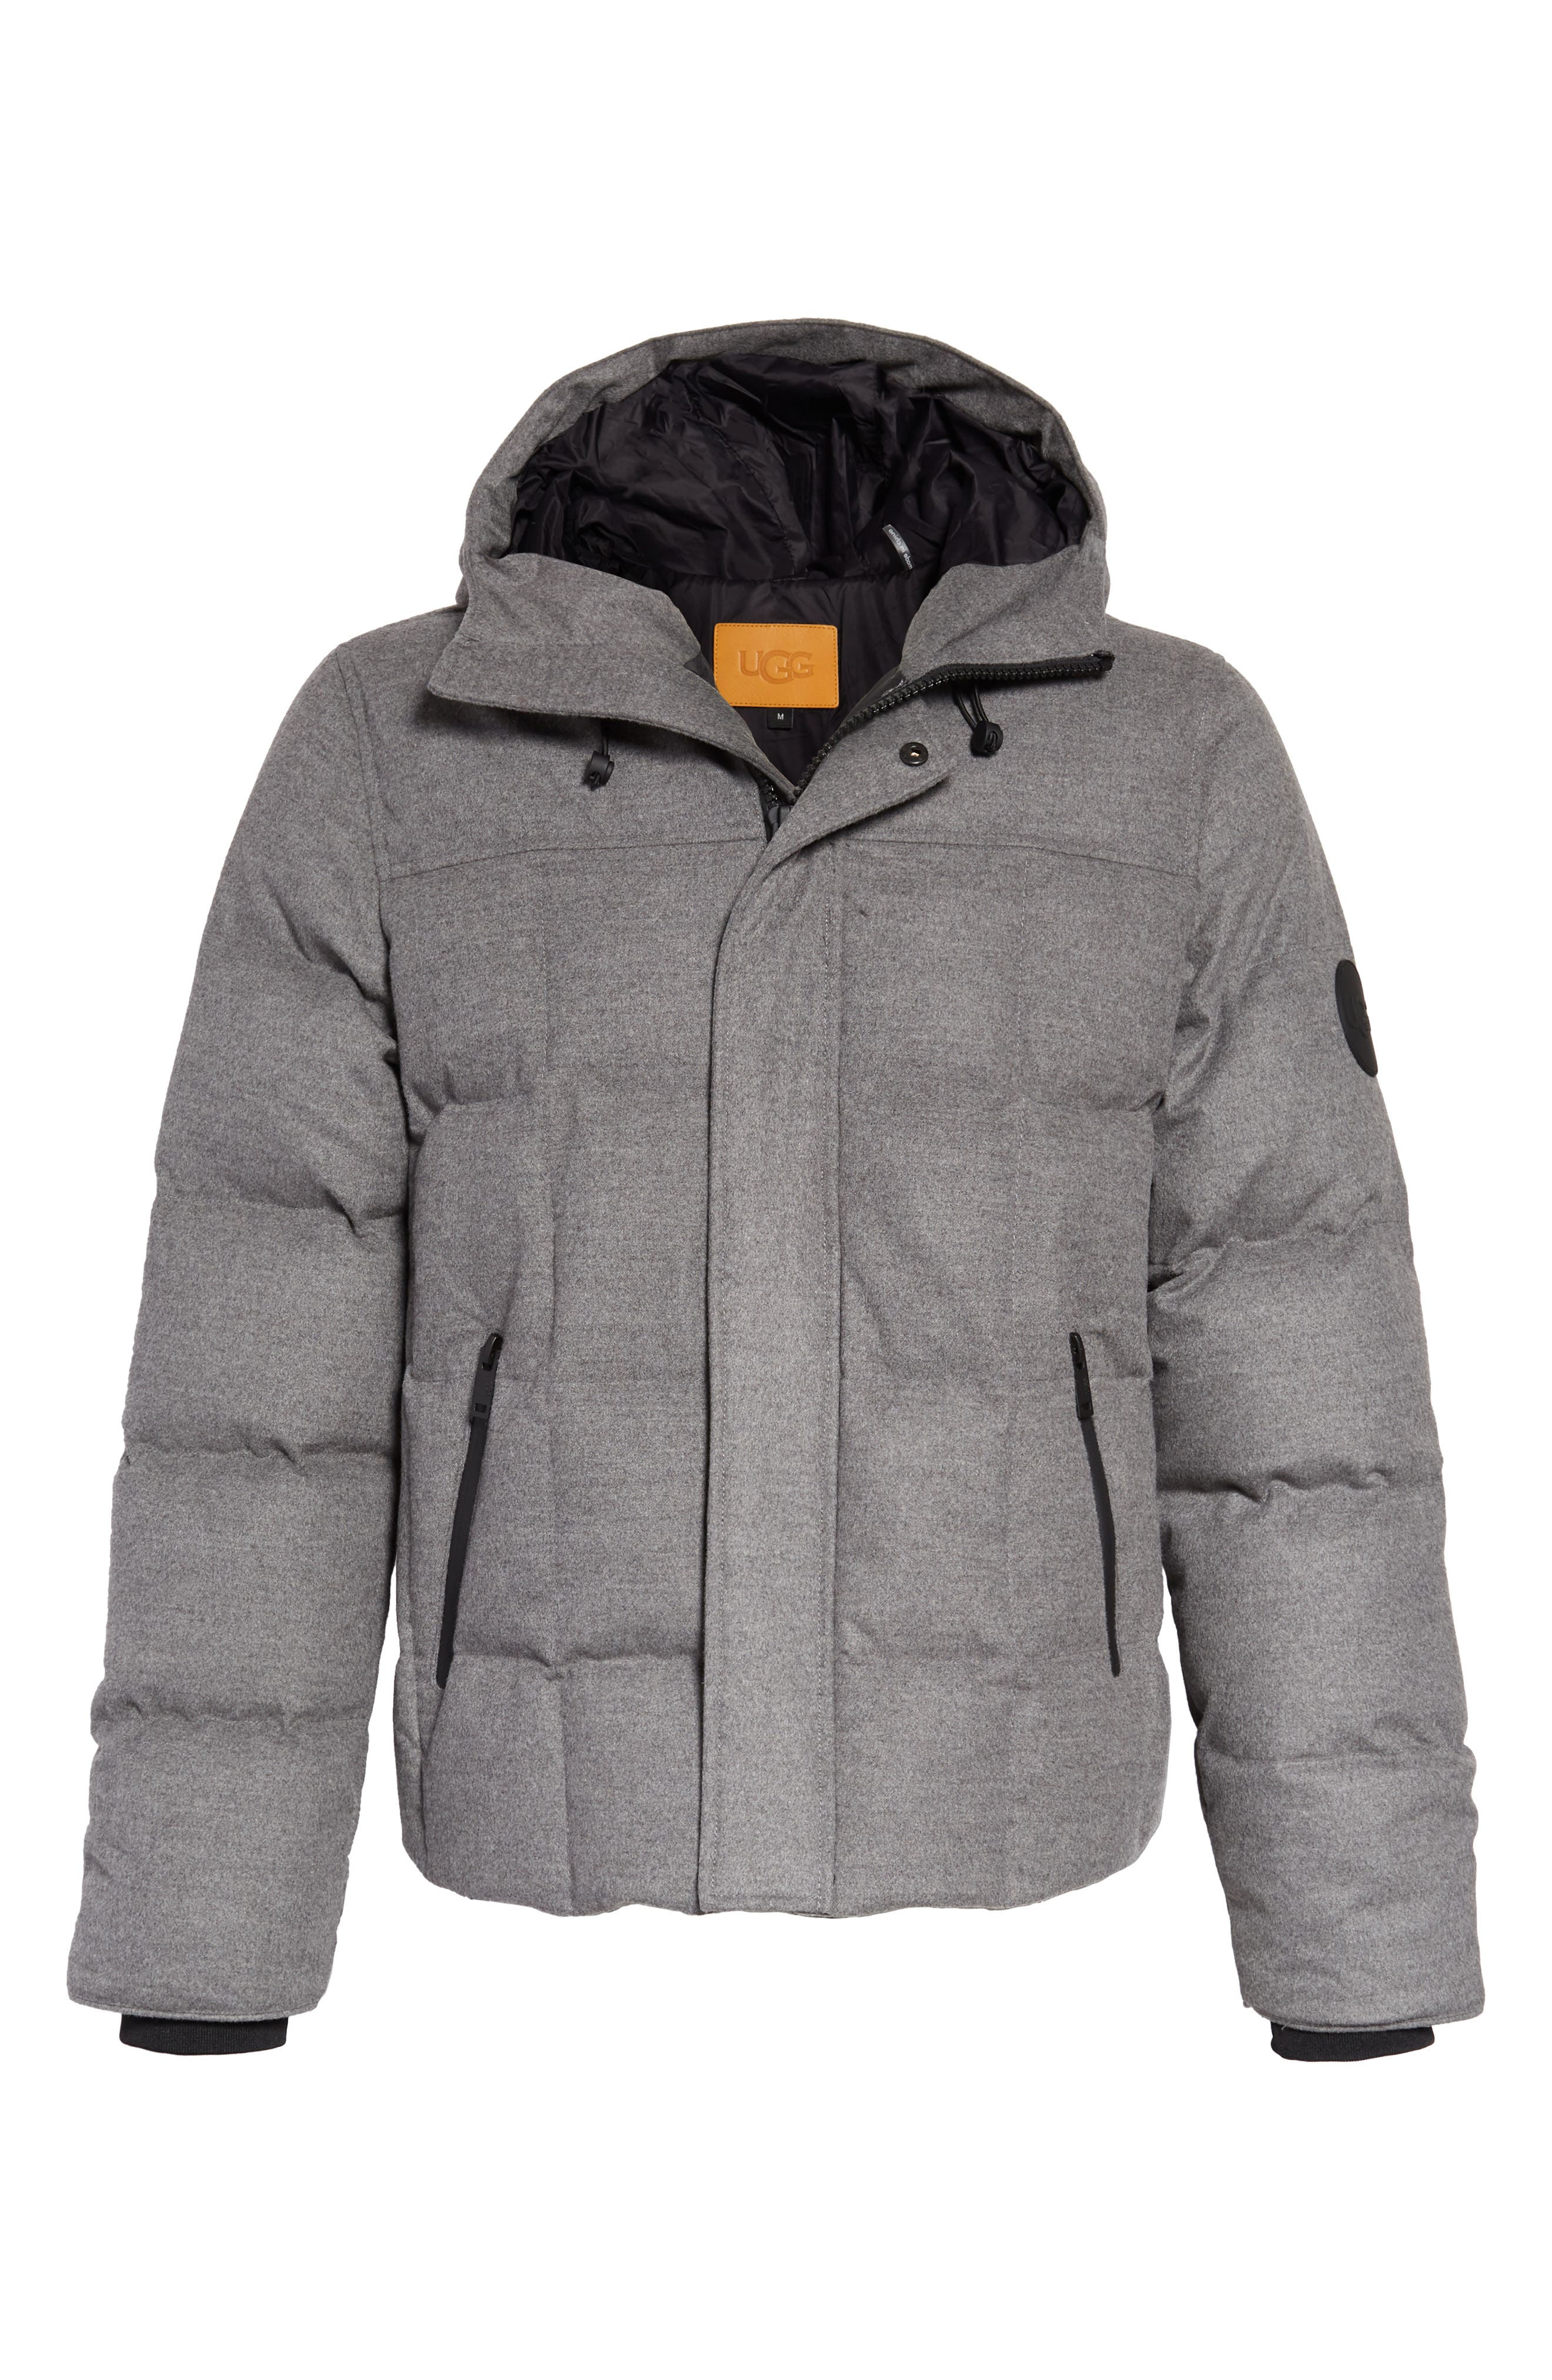 Cadin Technical Water Resistant Down Parka,                             Alternate thumbnail 6, color,                             MEDIUM HEATHER GREY